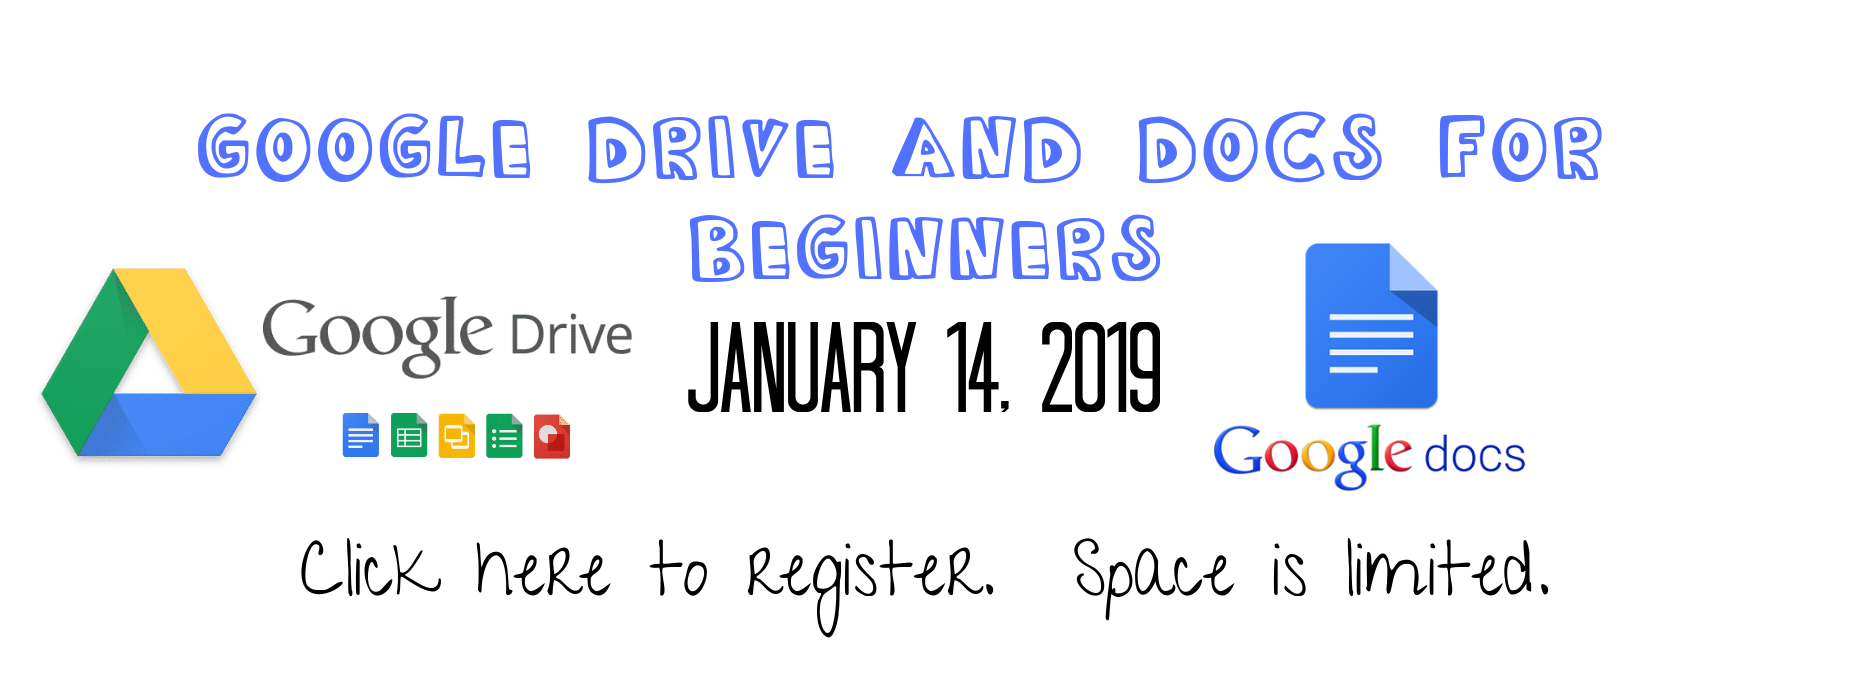 Google training January 14 click to register http://www.slp.k12.la.us/apps/form/form.STLAND-D.rcuqpNU.EL